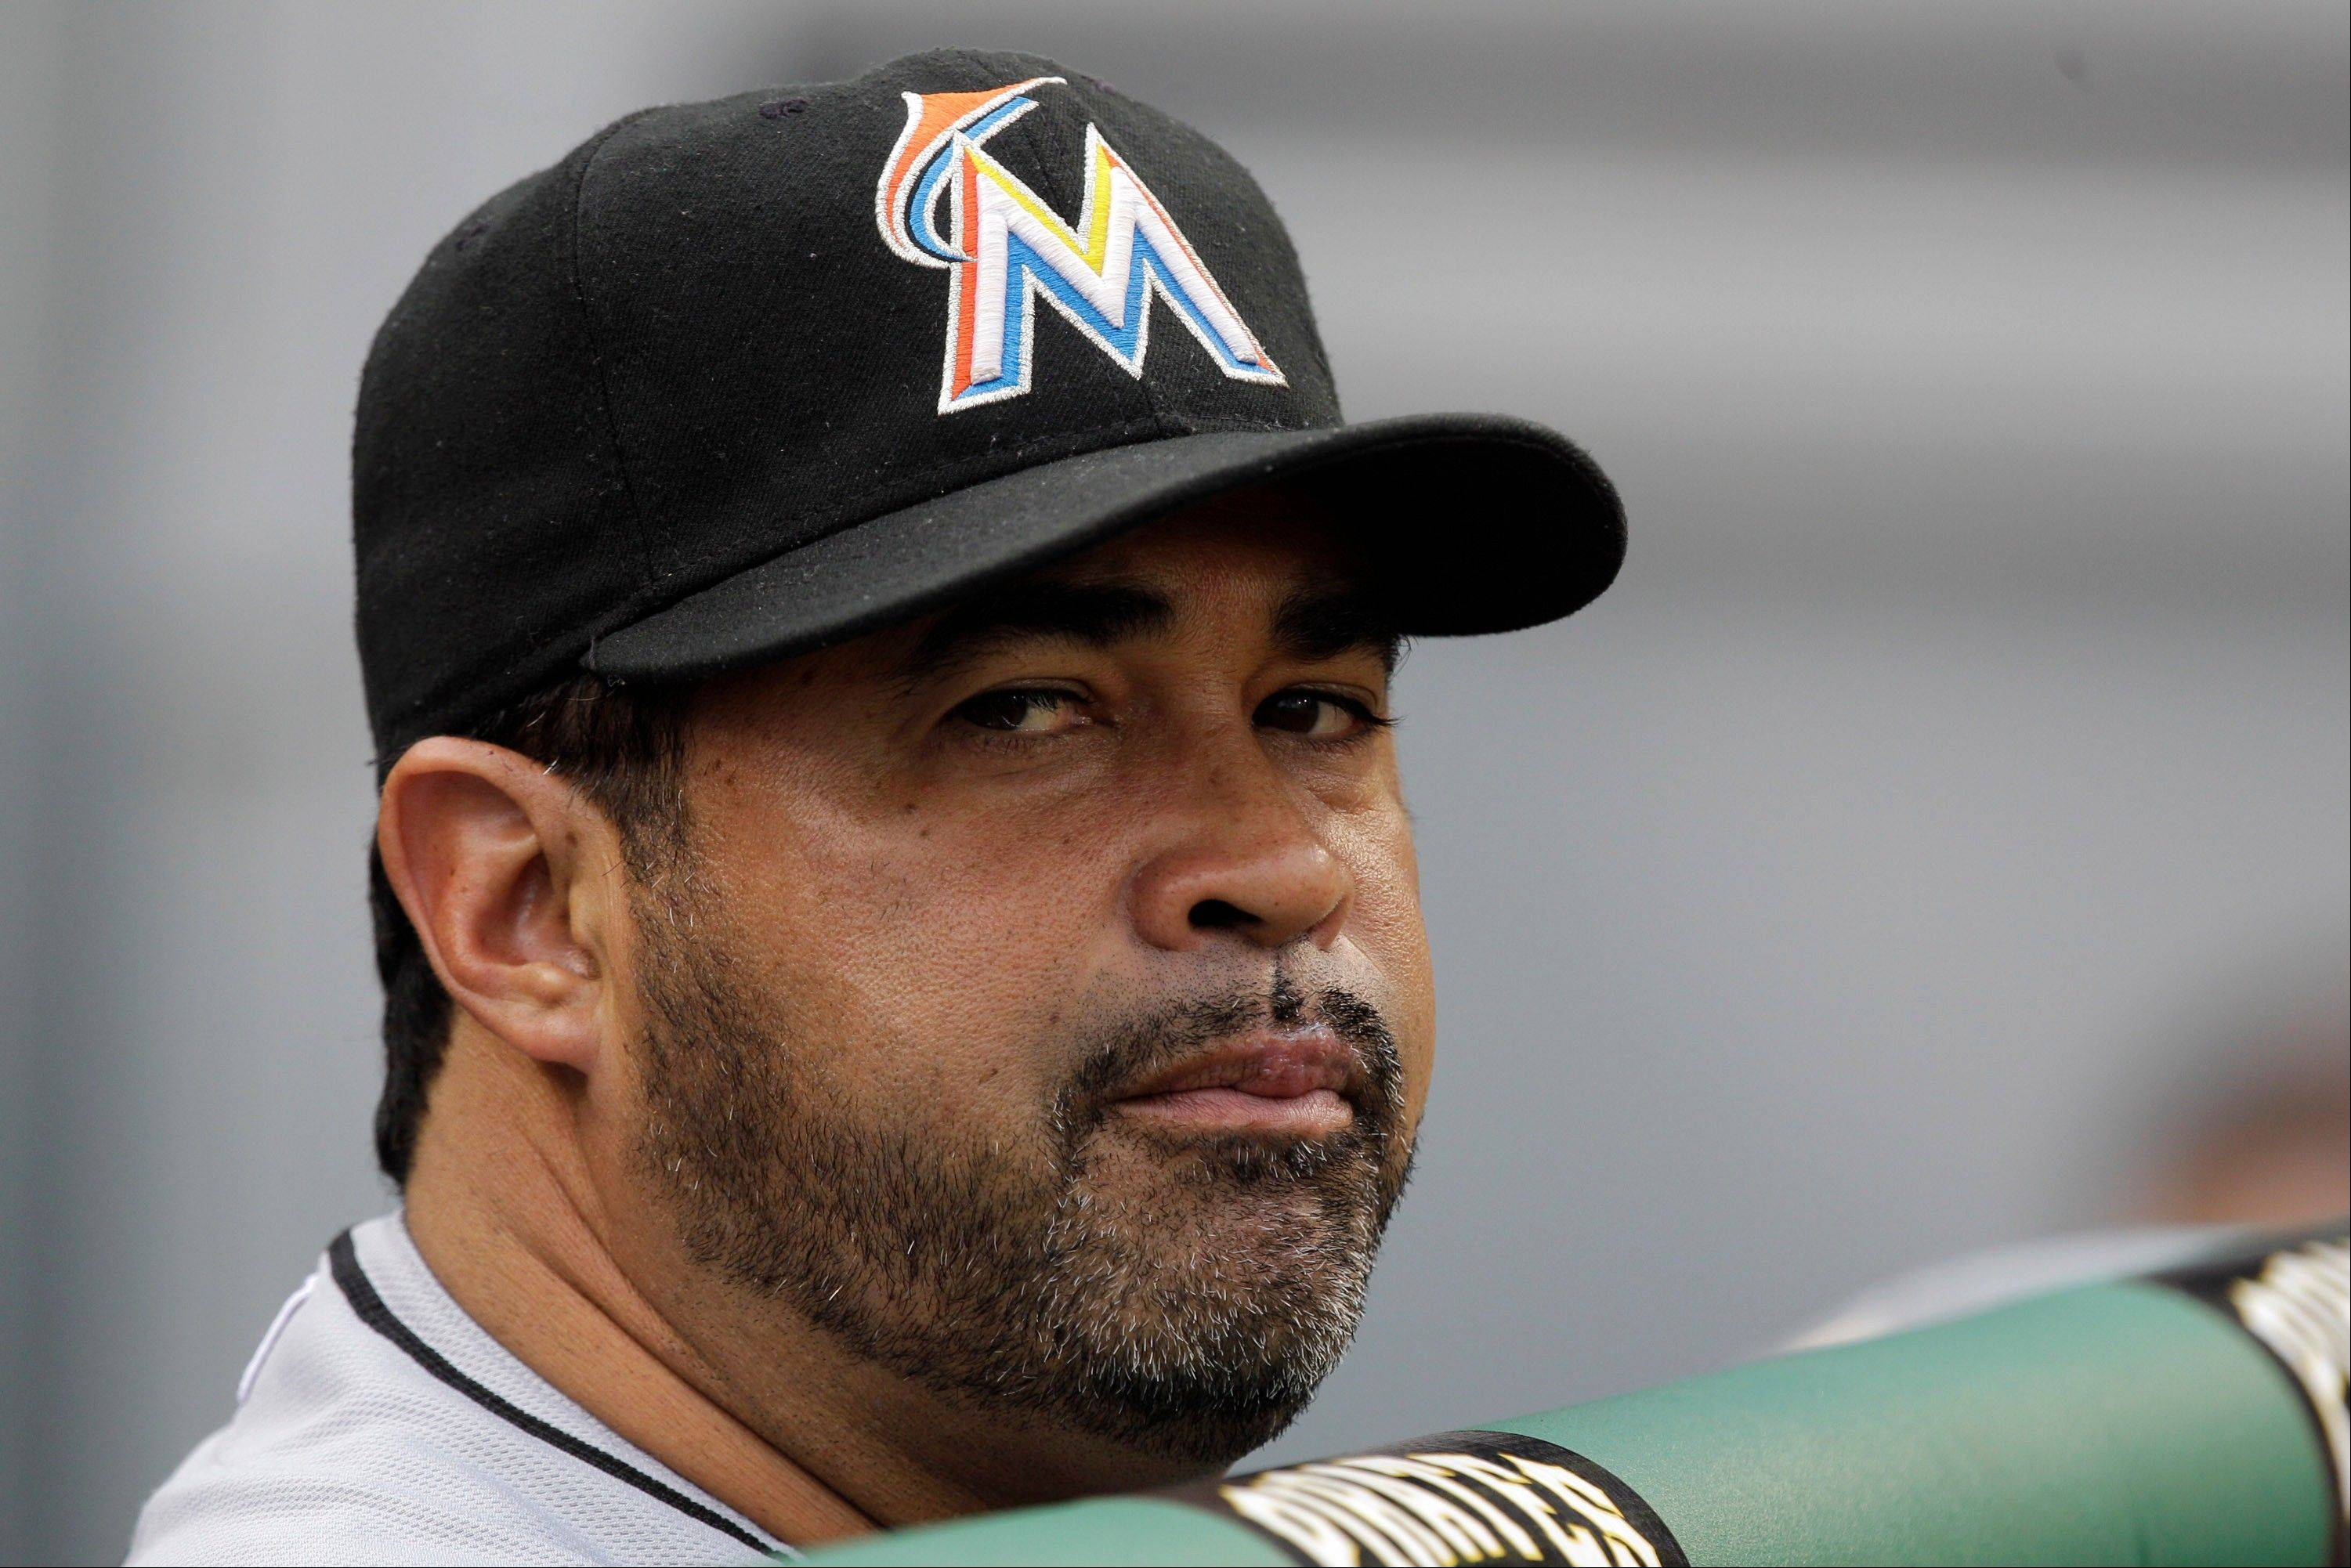 Ozzie Guillen might have just squandered what could have been a long managerial career after being fired Tuesday by the Miami Marlins.